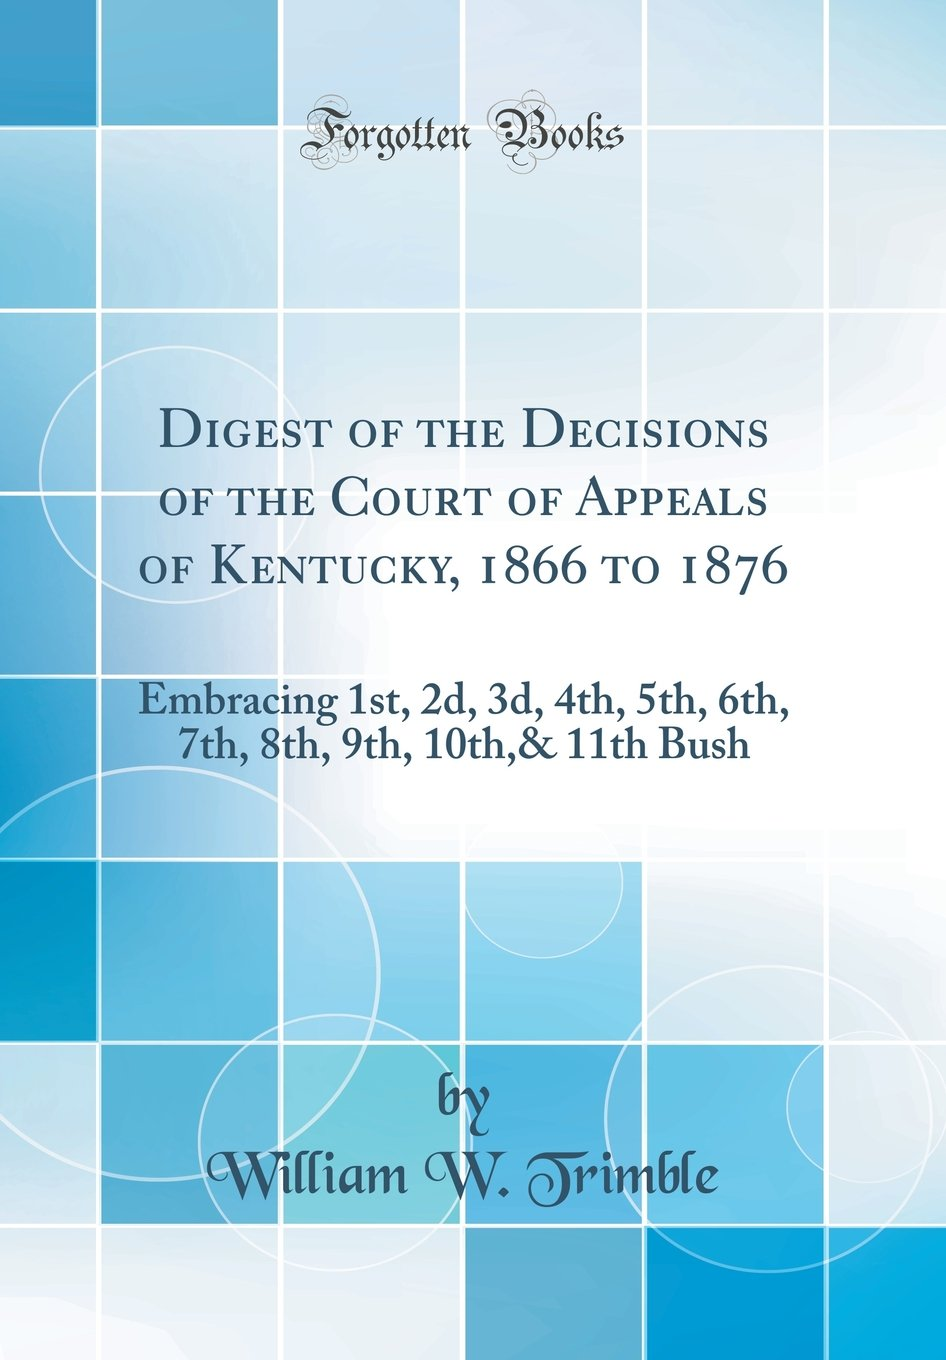 Digest of the Decisions of the Court of Appeals of Kentucky, 1866 to 1876: Embracing 1st, 2d, 3d, 4th, 5th, 6th, 7th, 8th, 9th, 10th,& 11th Bush (Classic Reprint) pdf epub